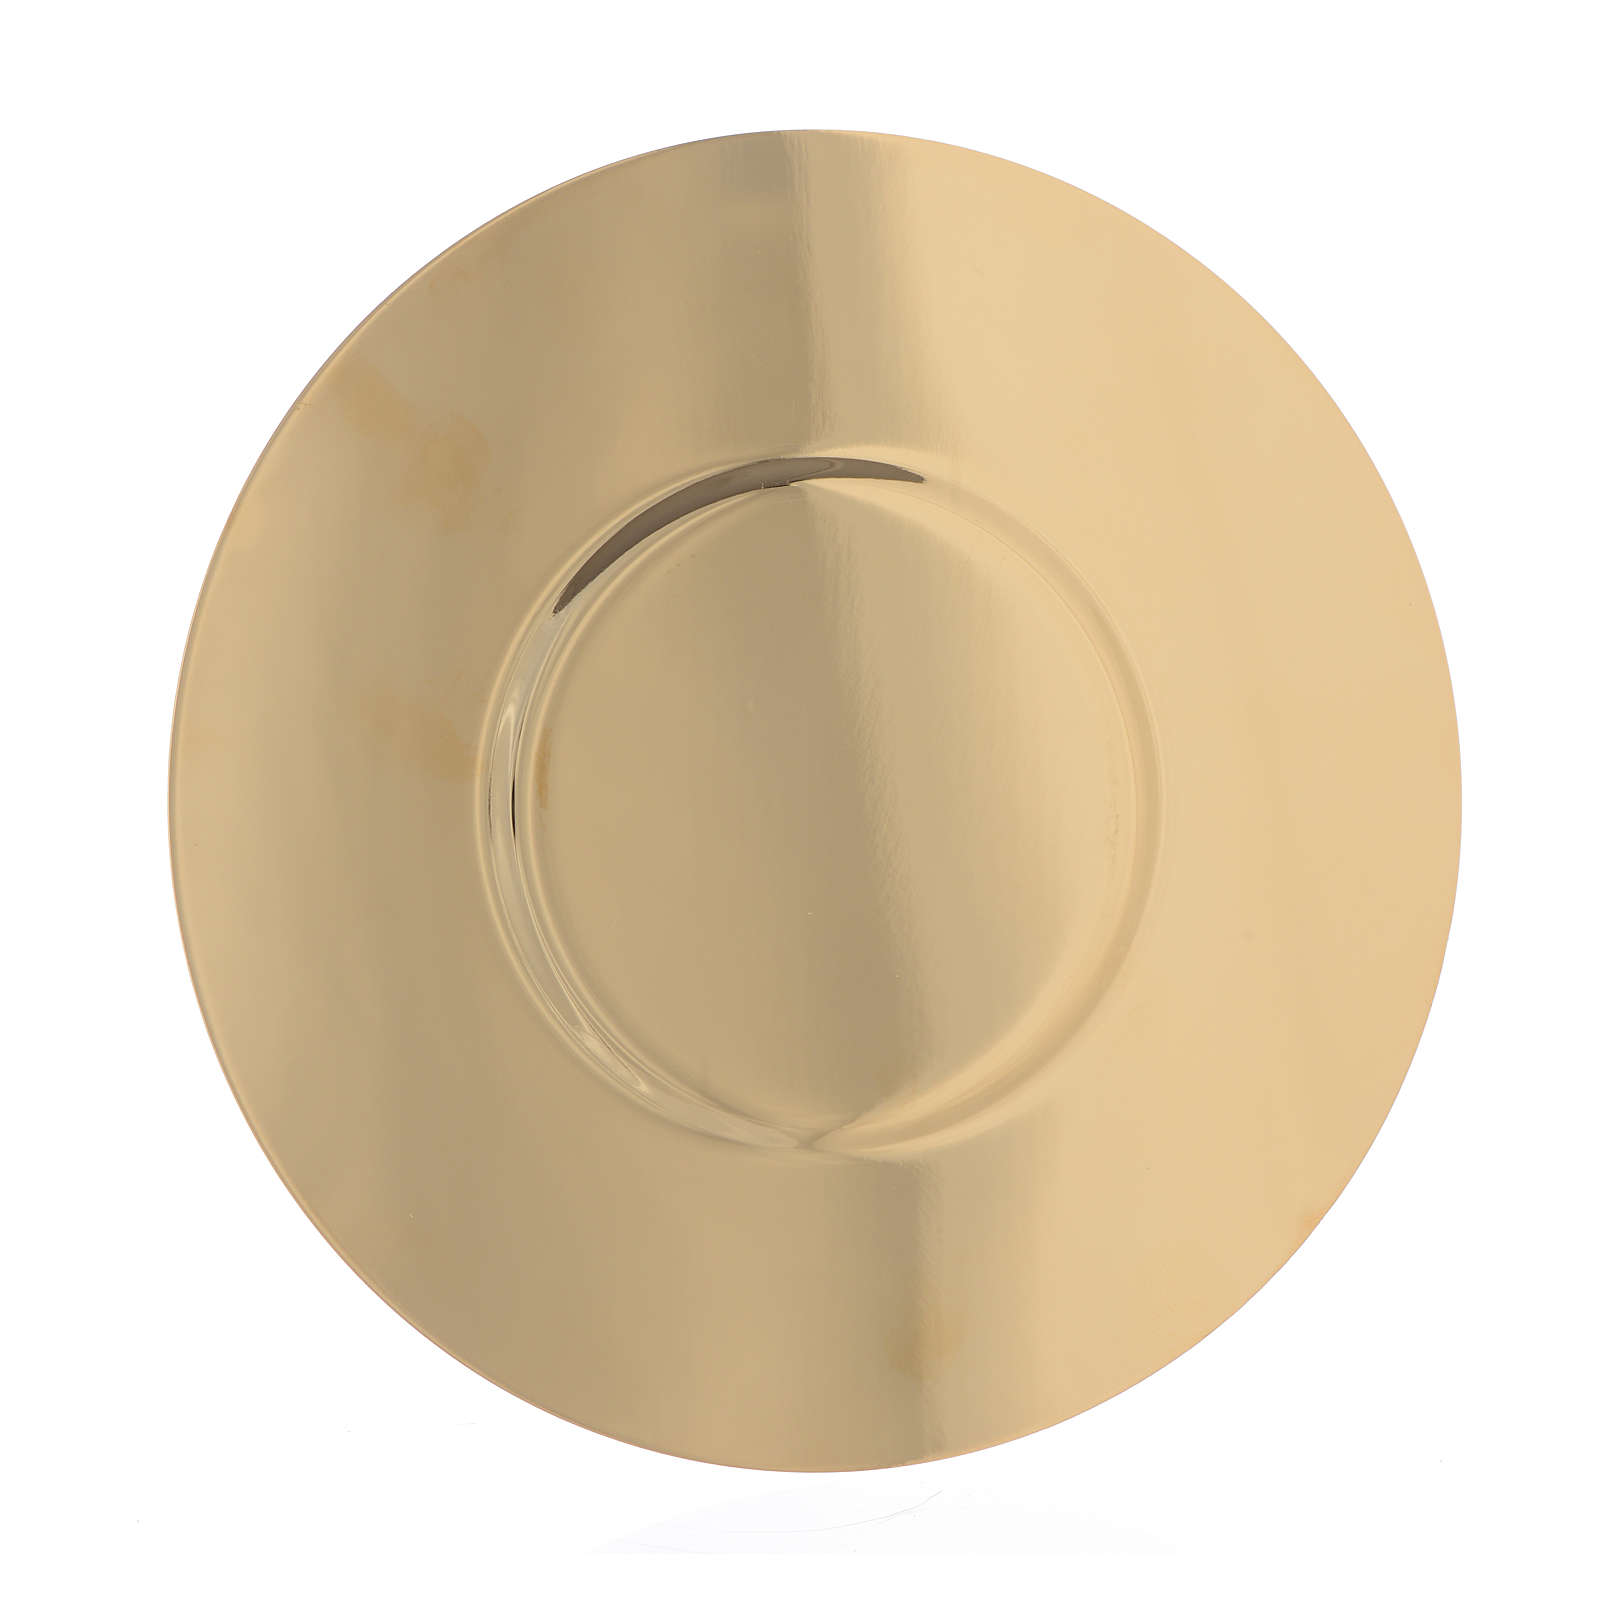 Paten in gold-plated shaped brass, 16cm 4